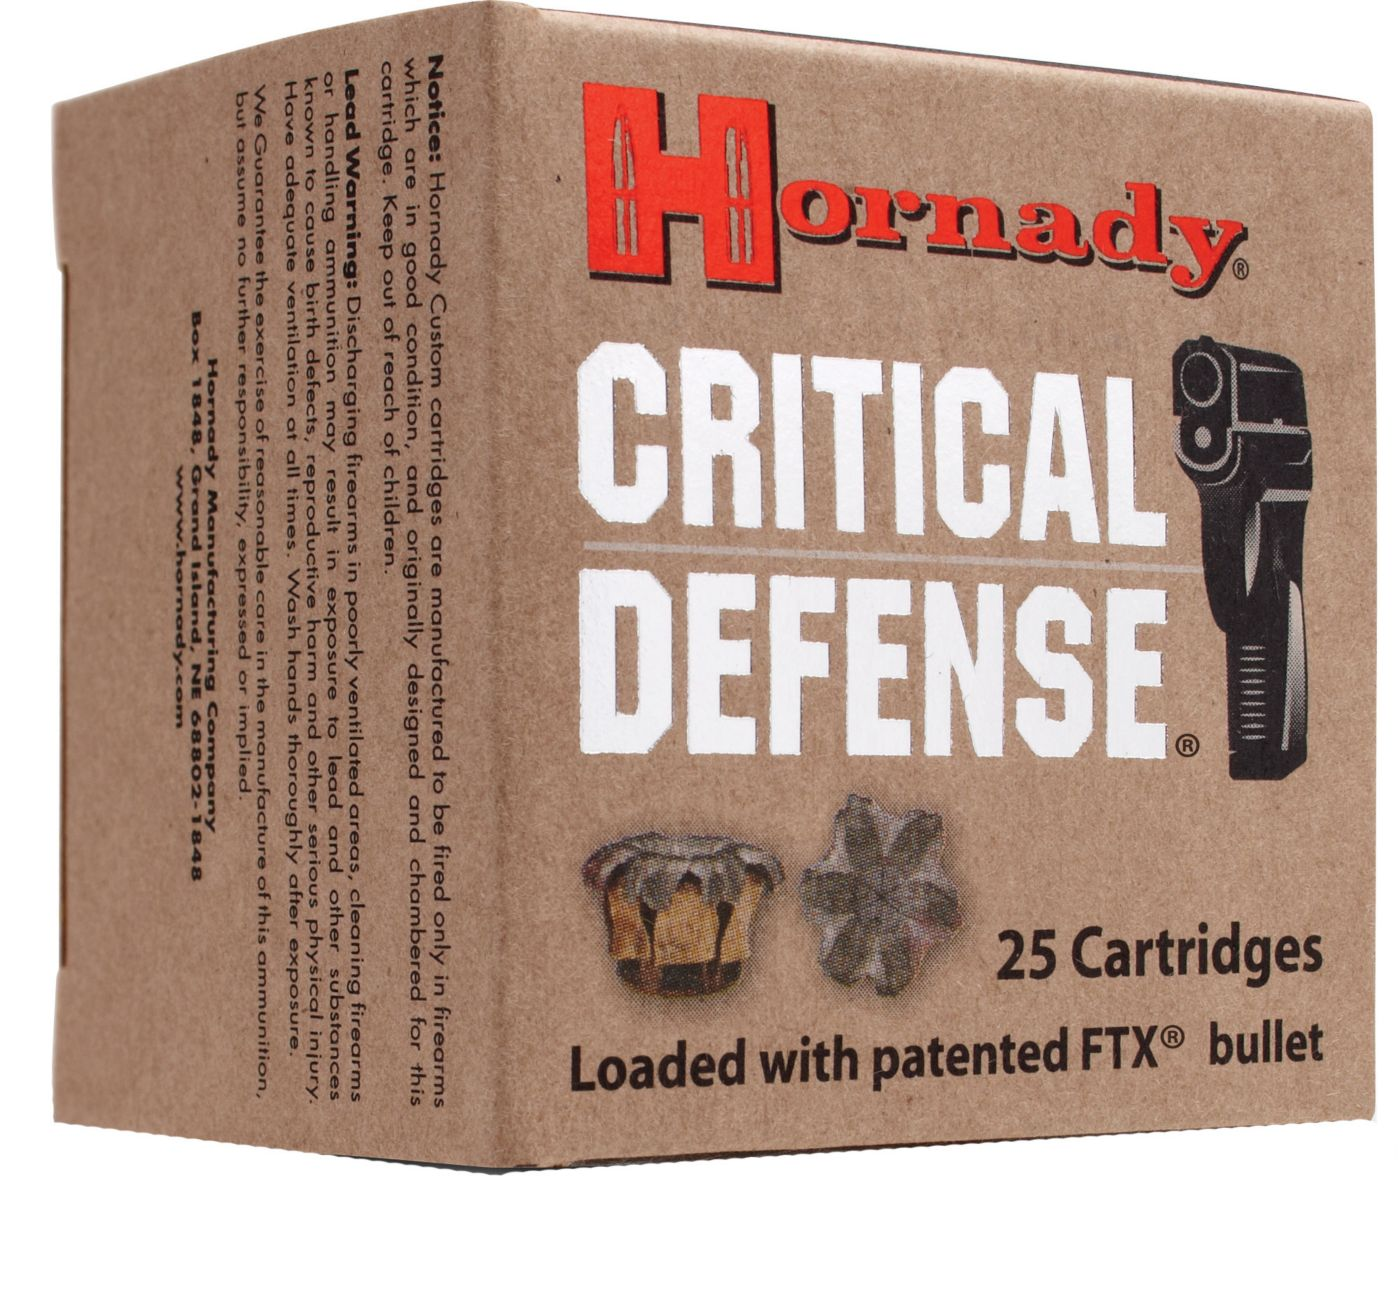 Hornady Critical Defense Handgun Ammo – 25 Rounds